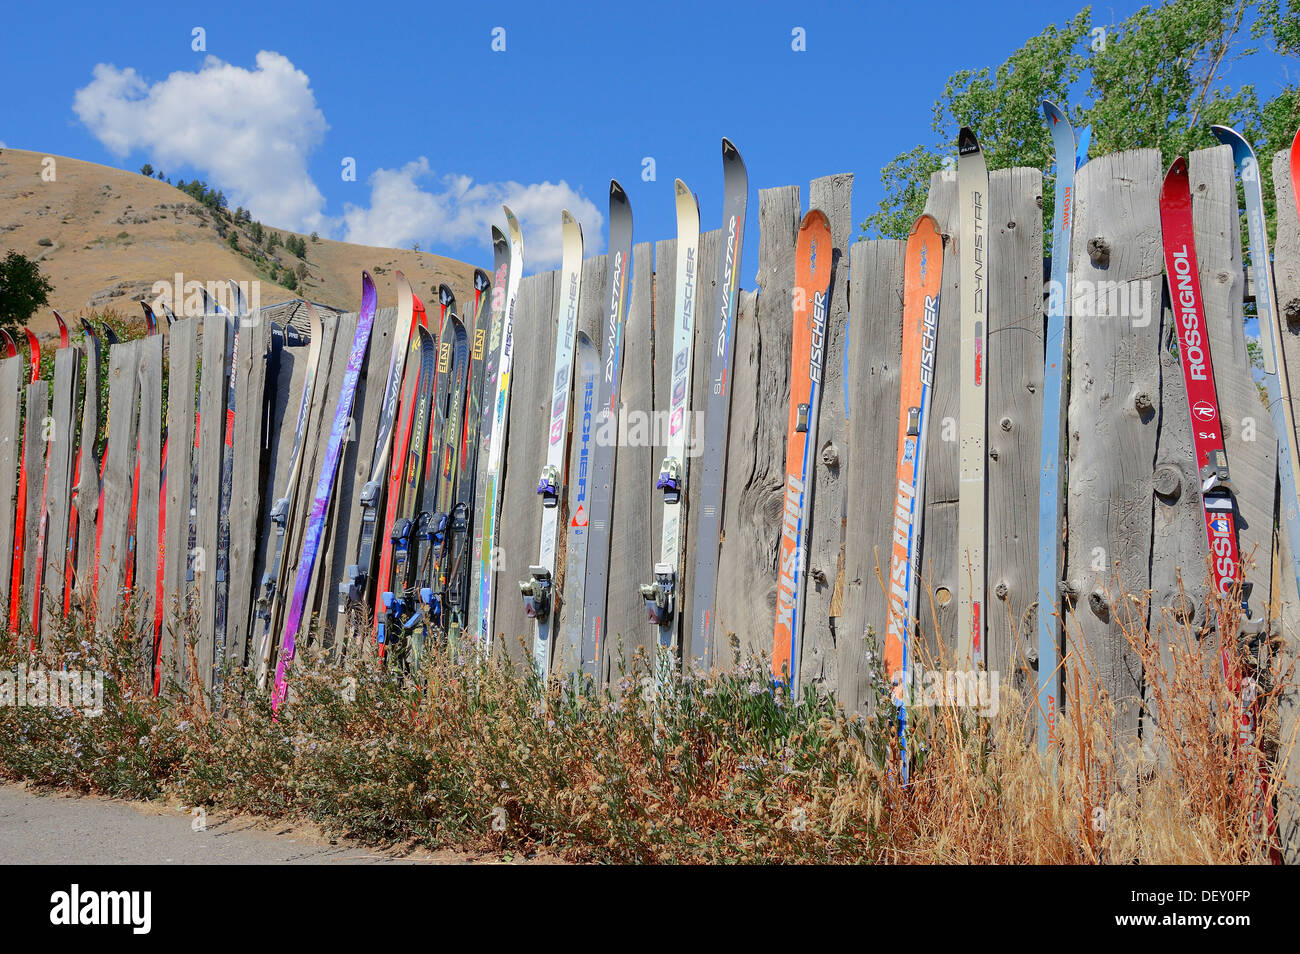 Picket fence with skis, Jackson, Wyoming, USA, PublicGround - Stock Image